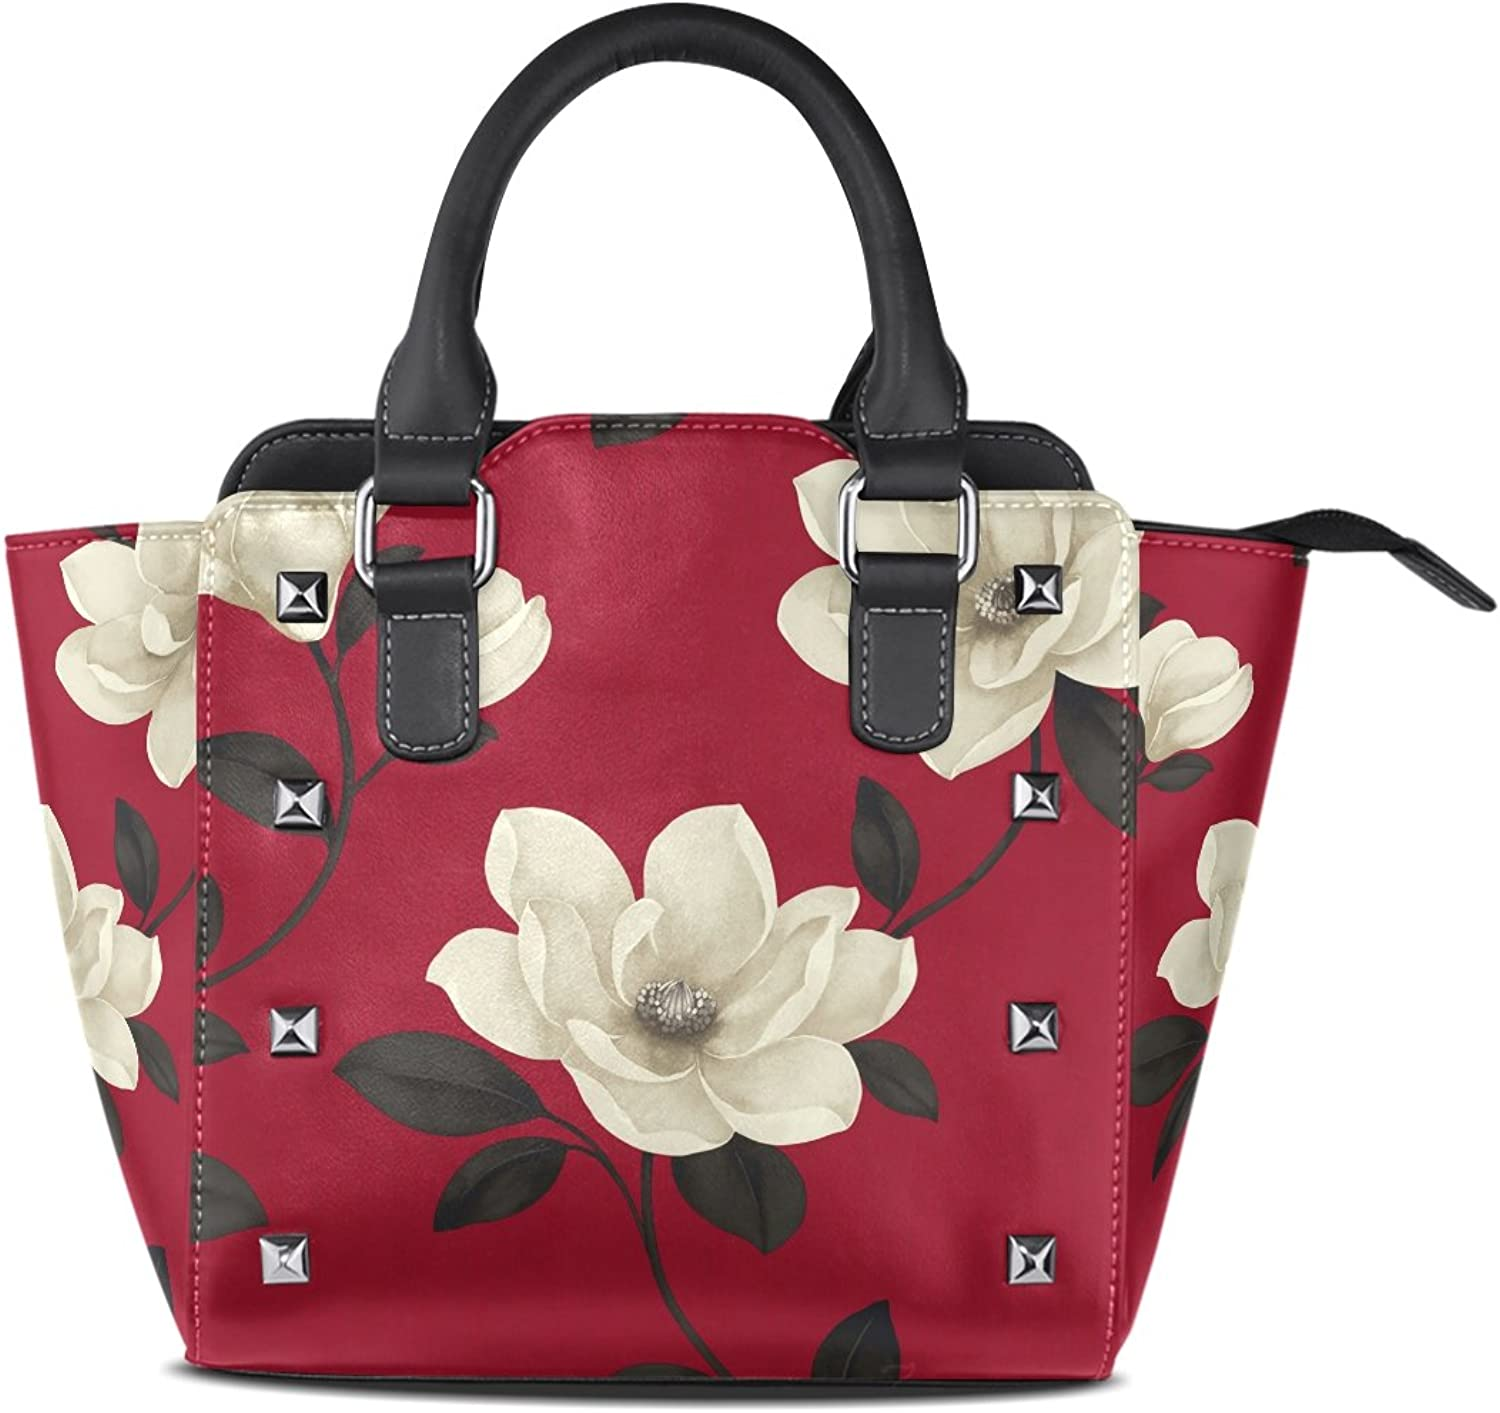 Sunlome Classic White Floral Print Women's Leather Tote Shoulder Bags Handbags